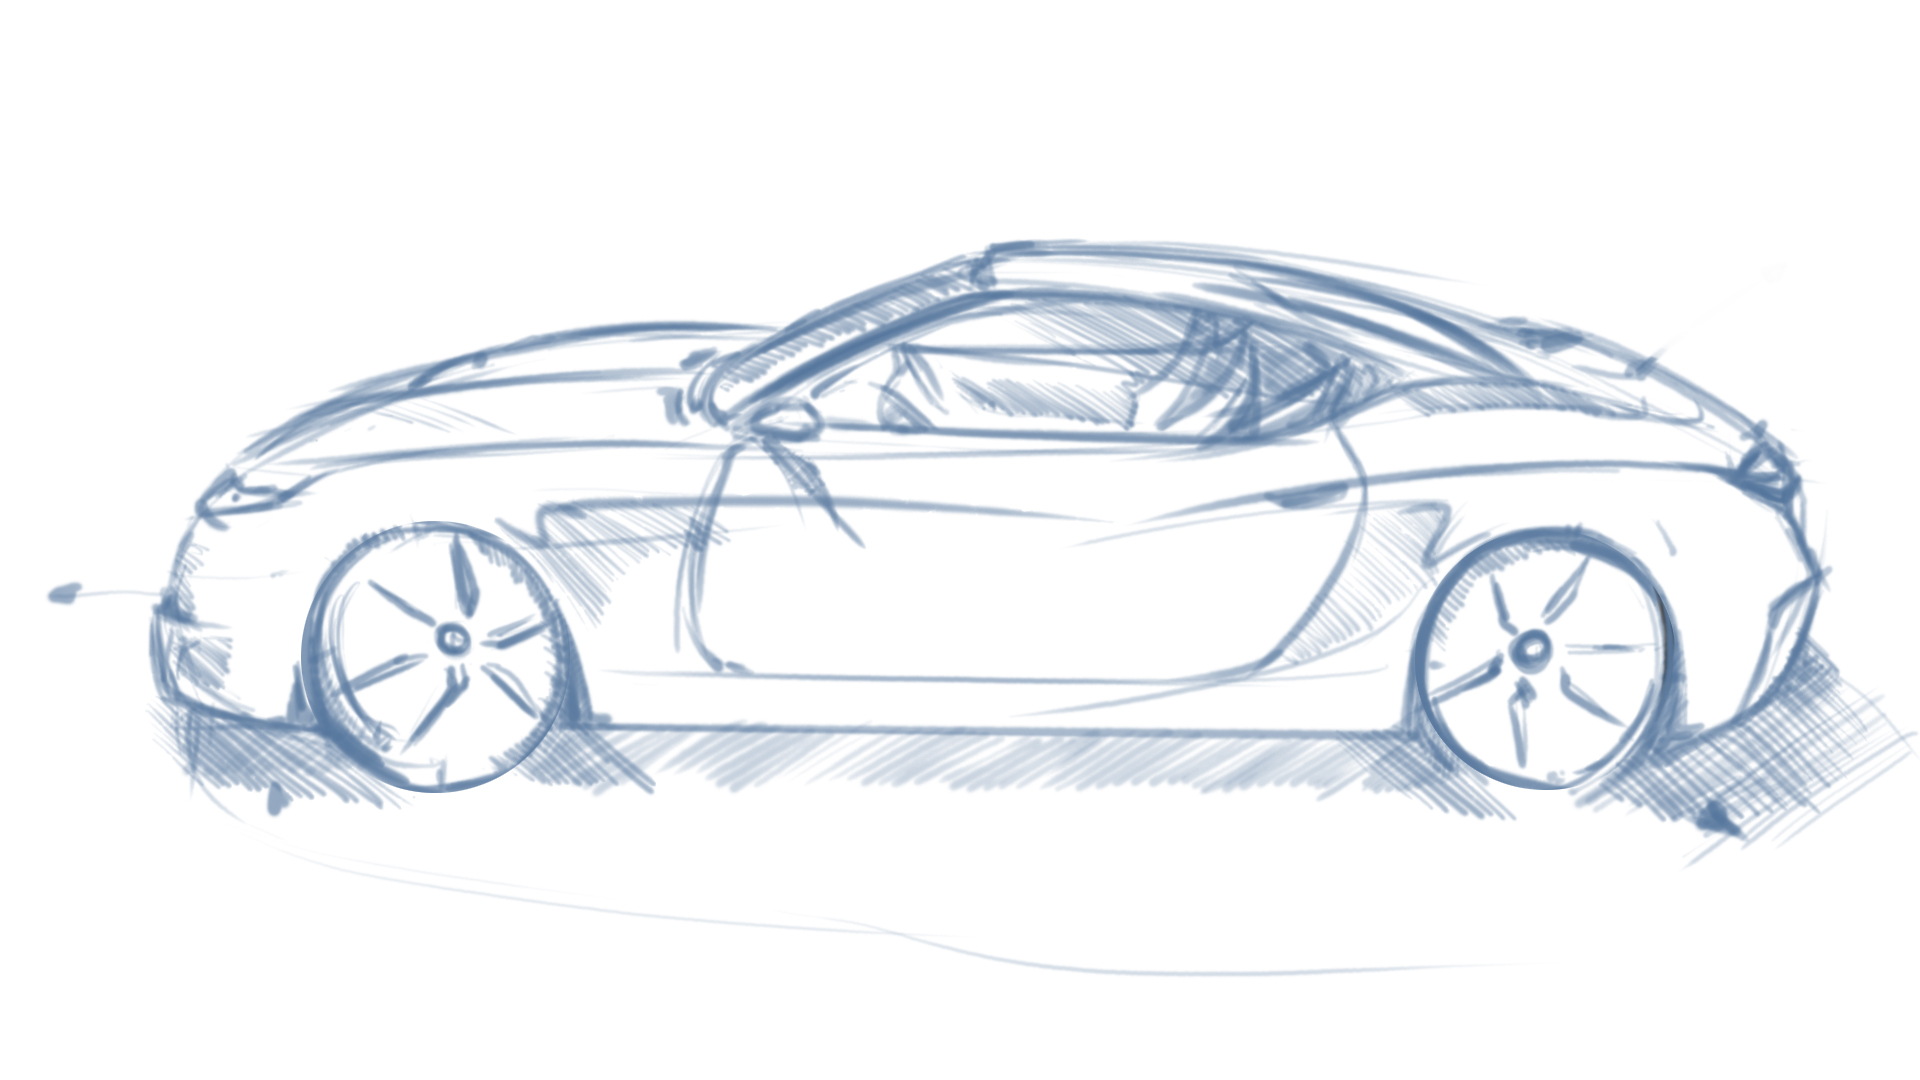 Drawn vehicle perspective drawing Sketch Learn draw Car cars